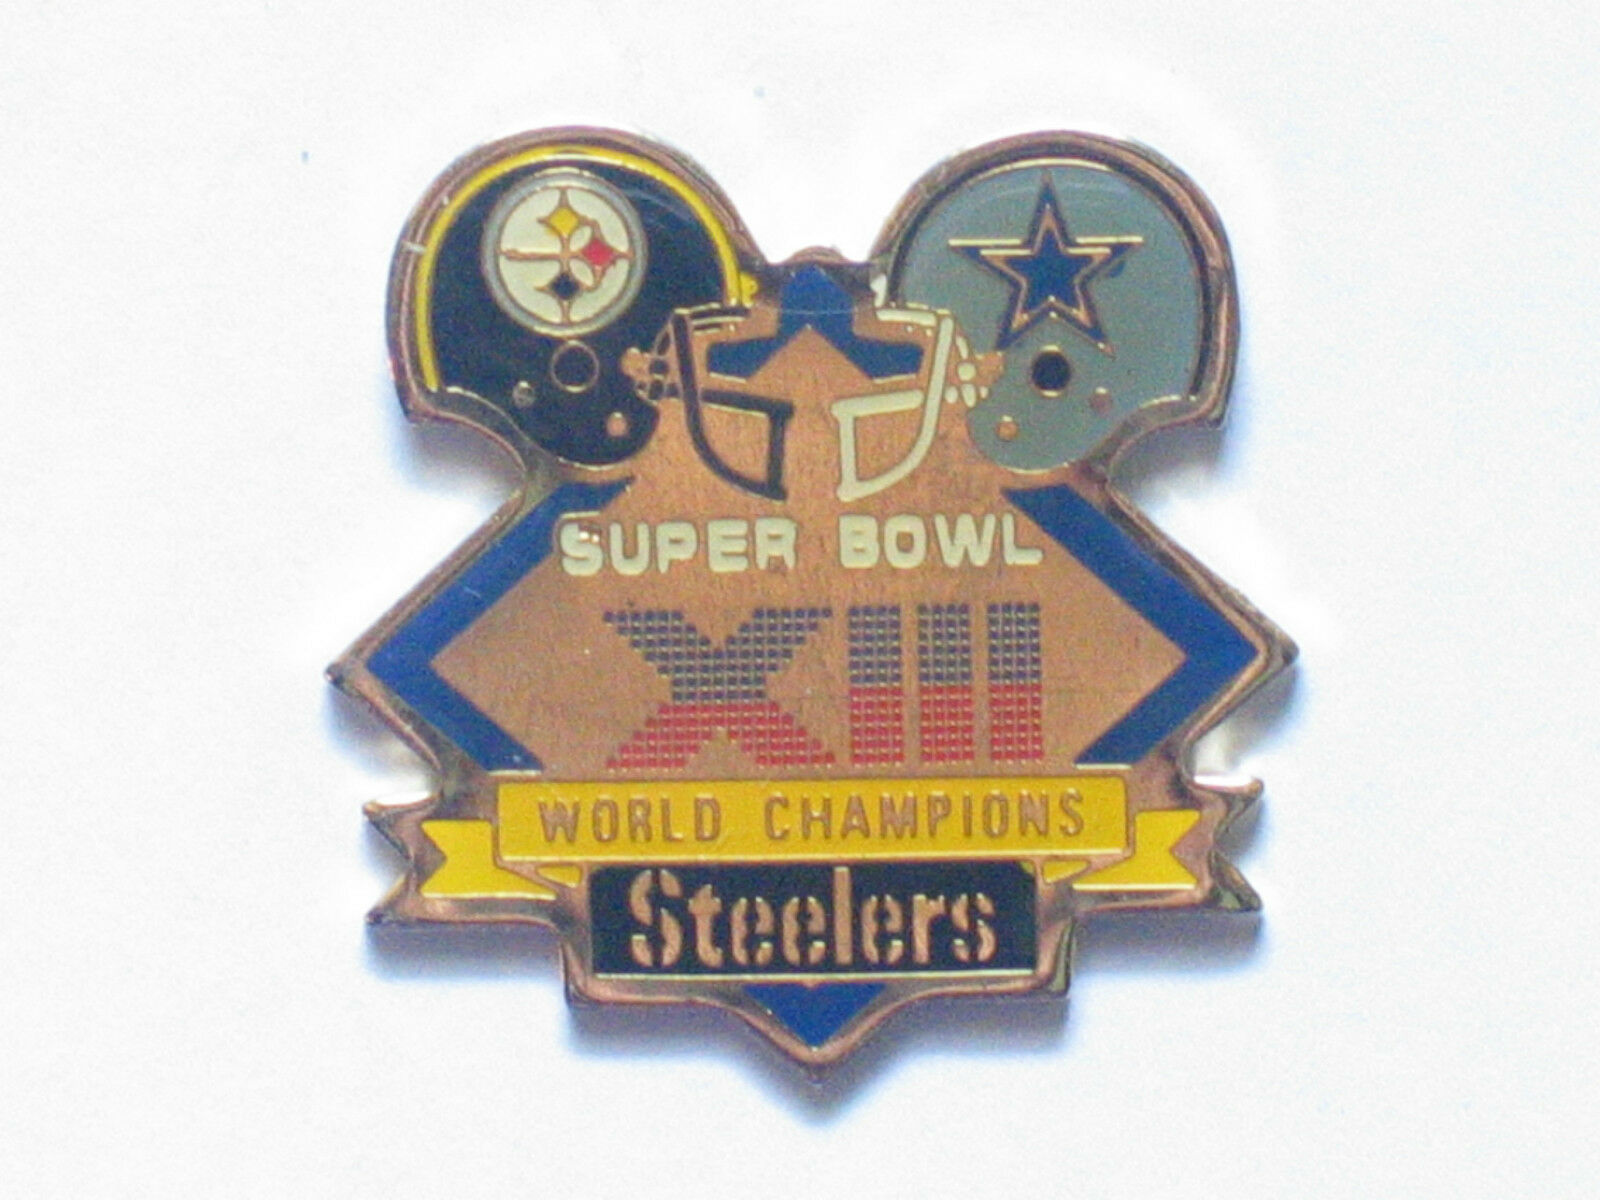 Superbowl XIII XIII XIII Pittsburgh Steelers Vs. Dallas Cowboys Super Bowl Prendedor Pin 81778f